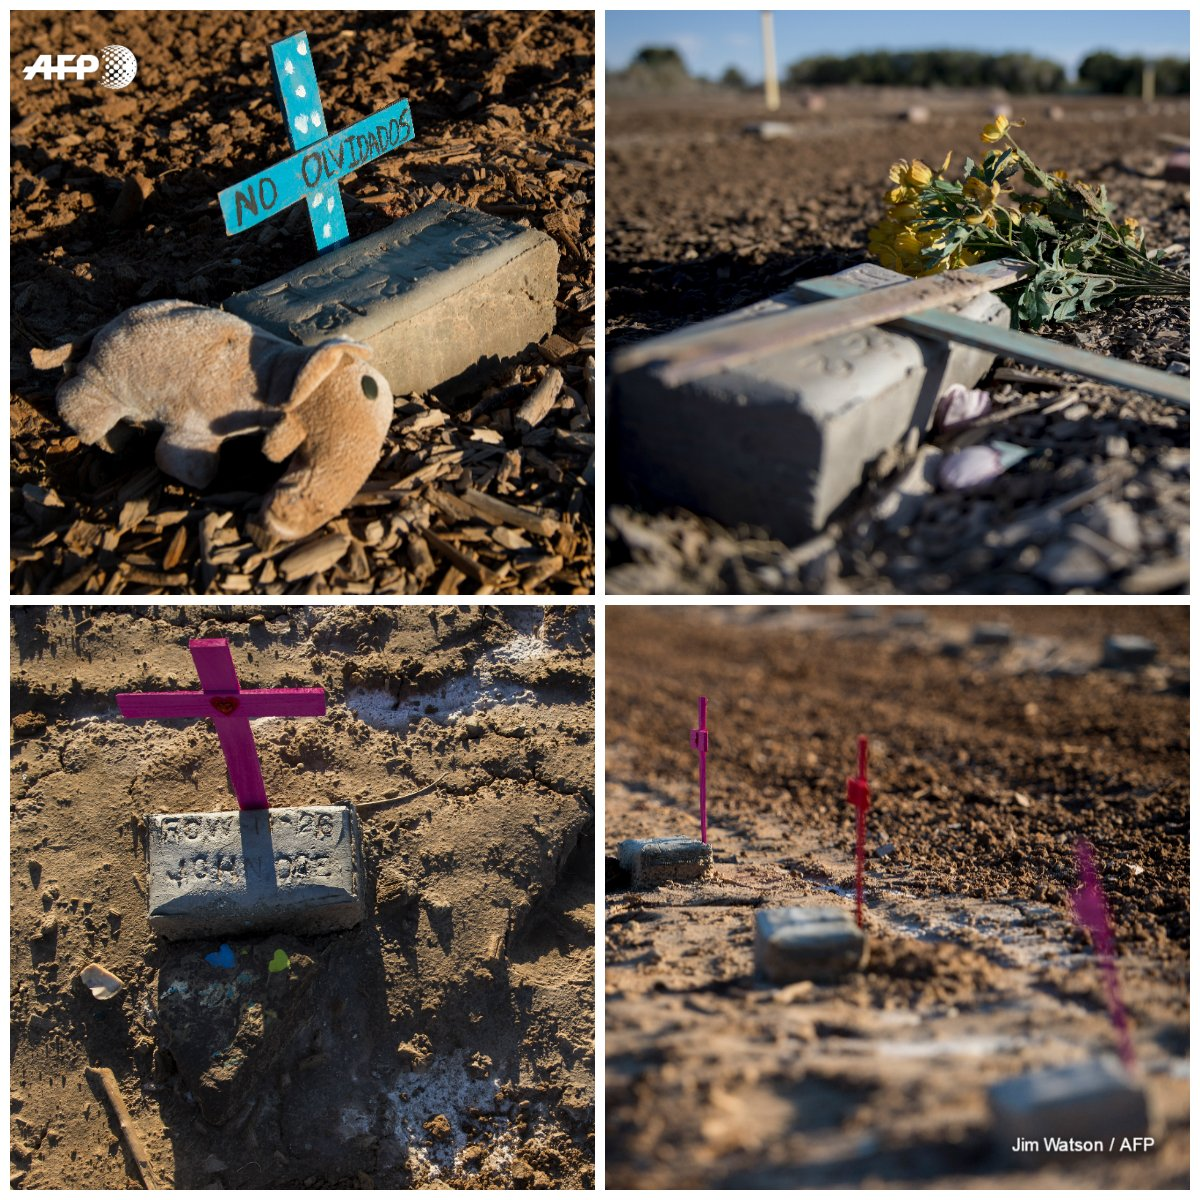 Mexico border series Hundreds unidentified migrants buried